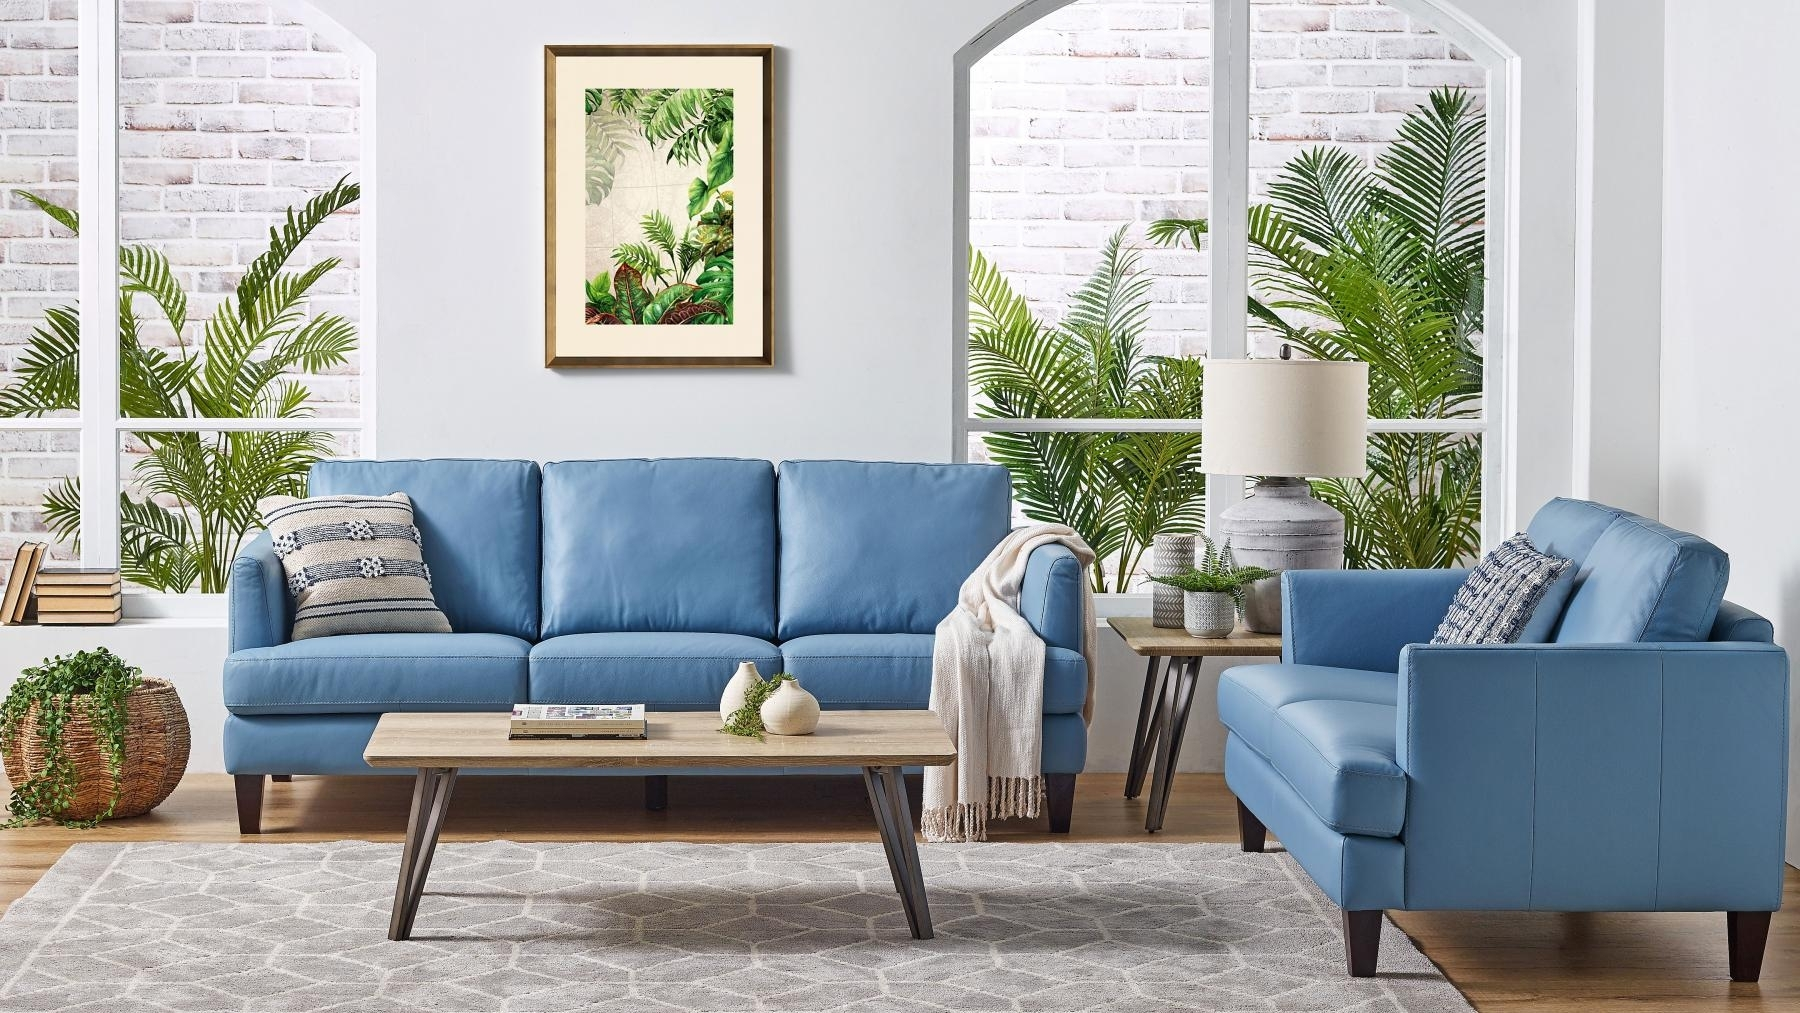 How Sofa Sets Bring Style To Your Home?